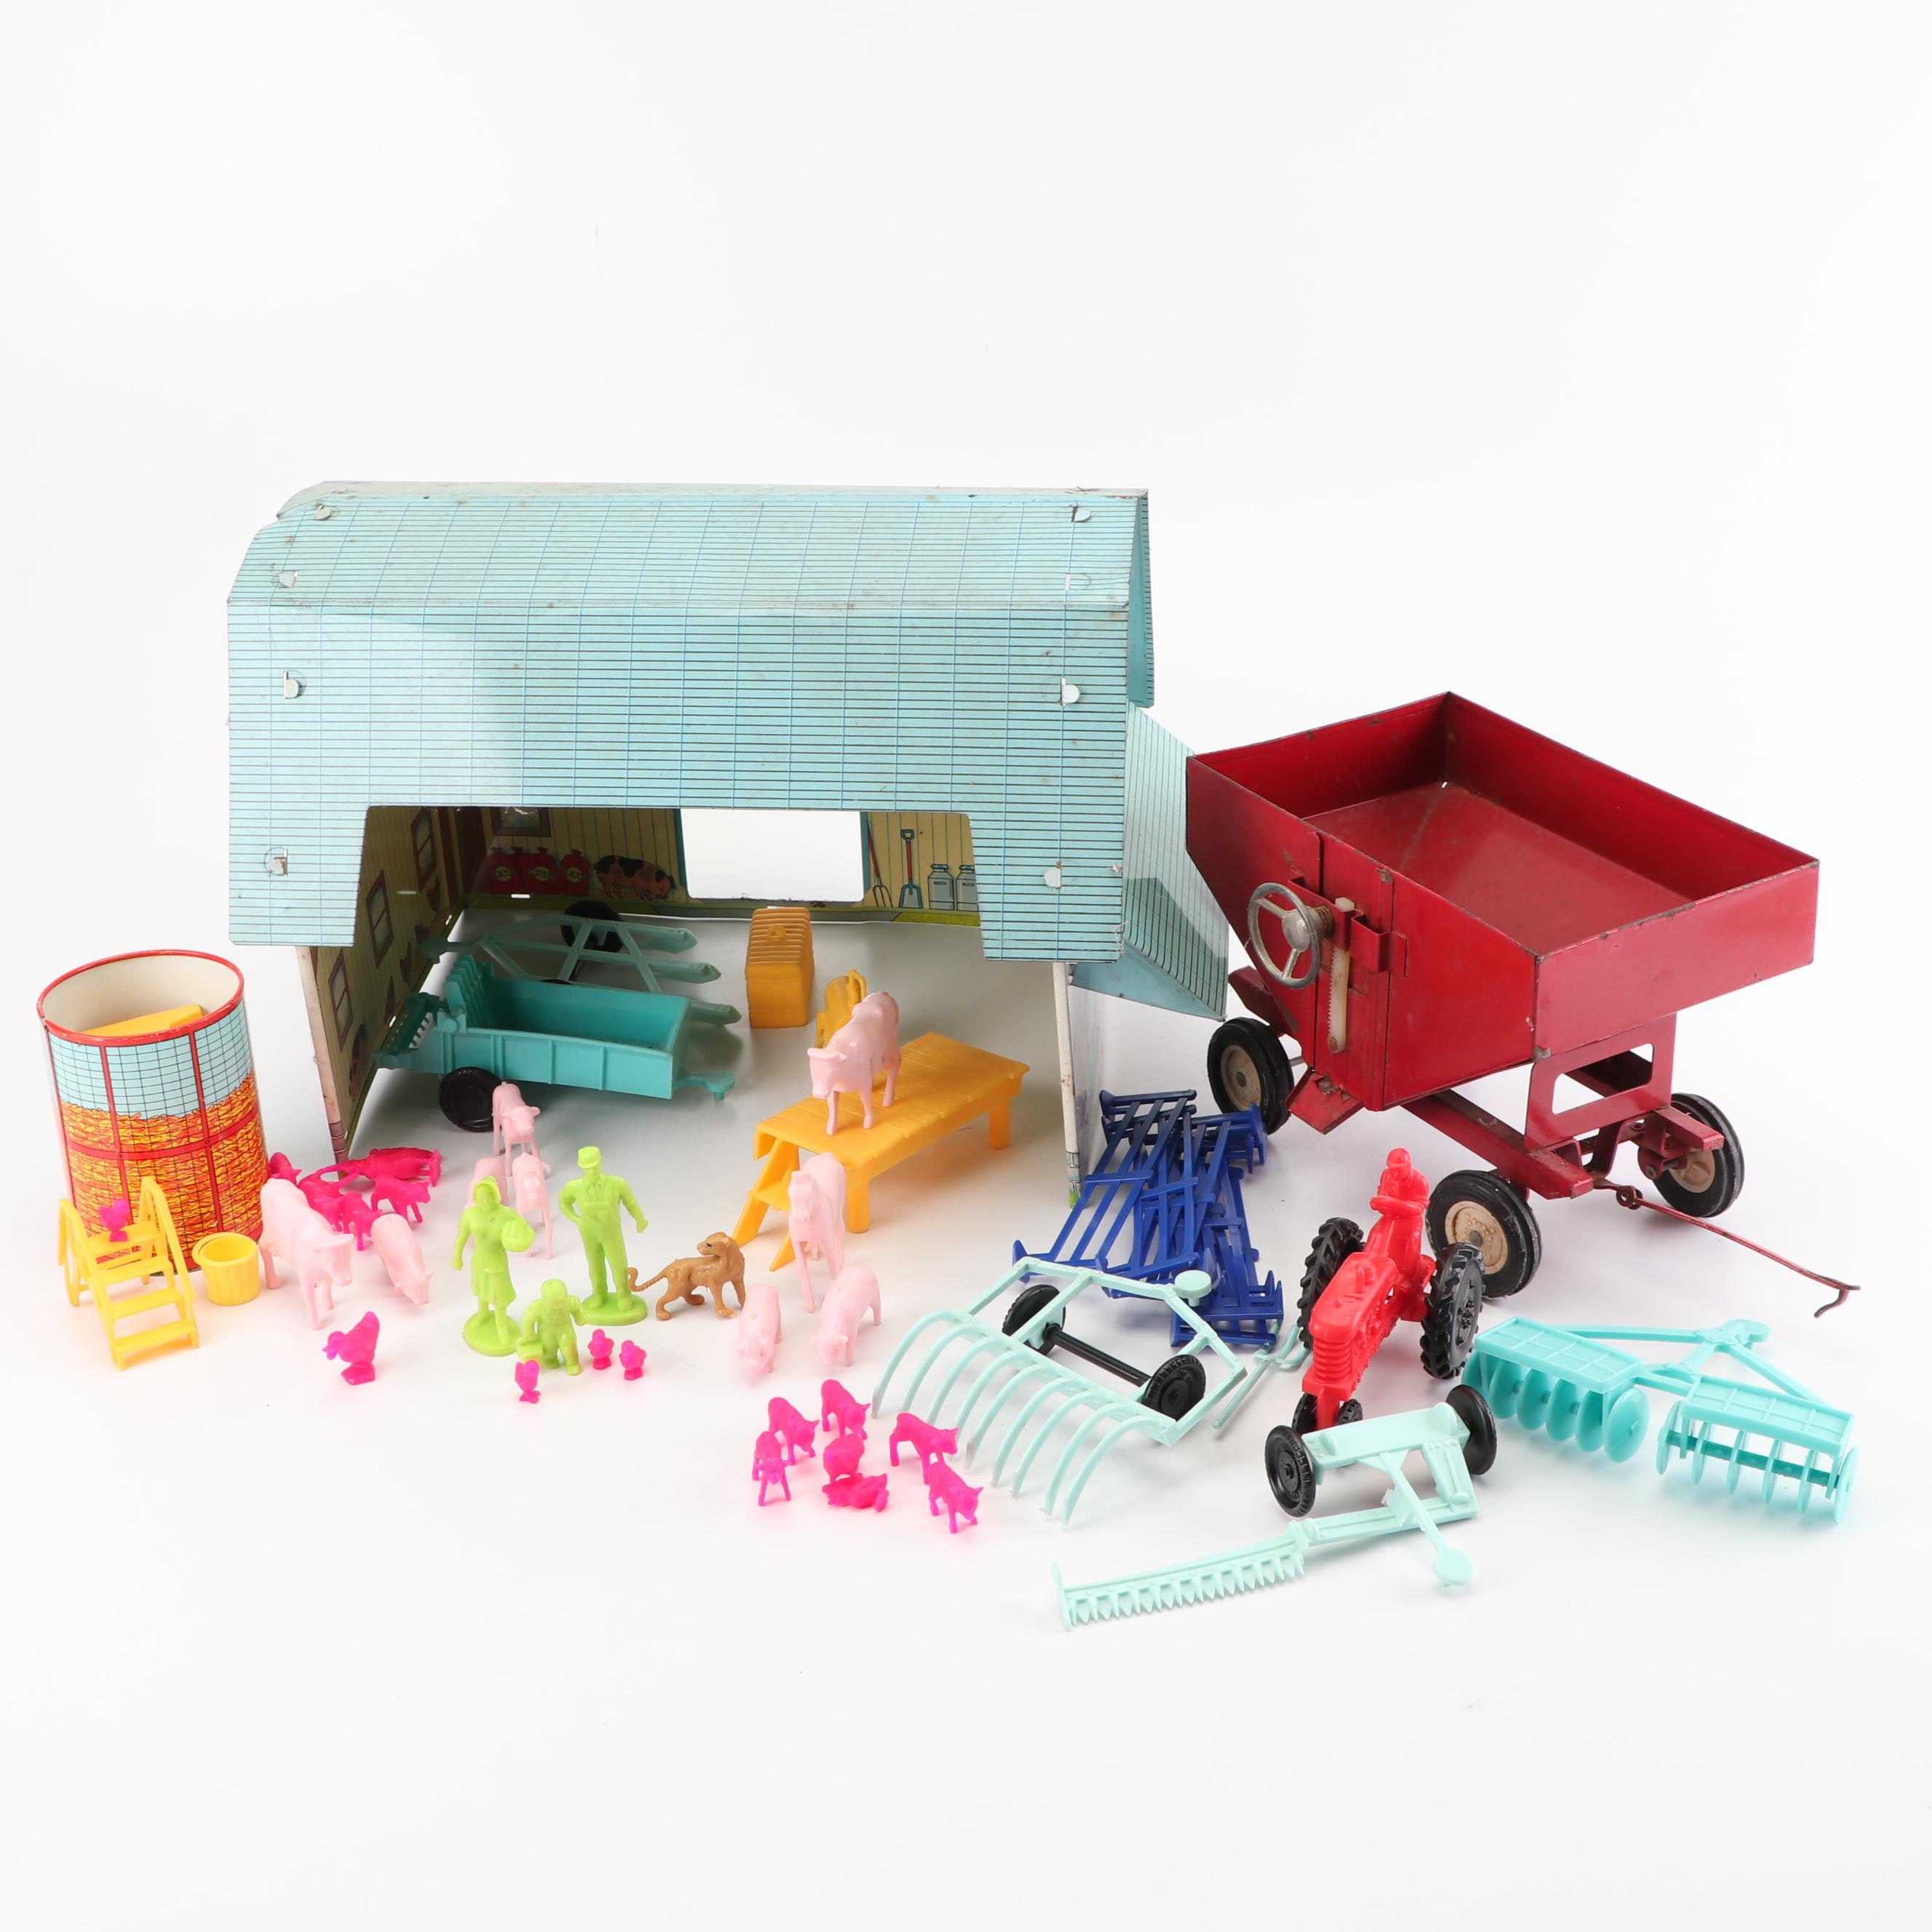 """""""Valley View Farm"""" Toy Set including Barn, Equipment, and Animals, Mid-20th C."""